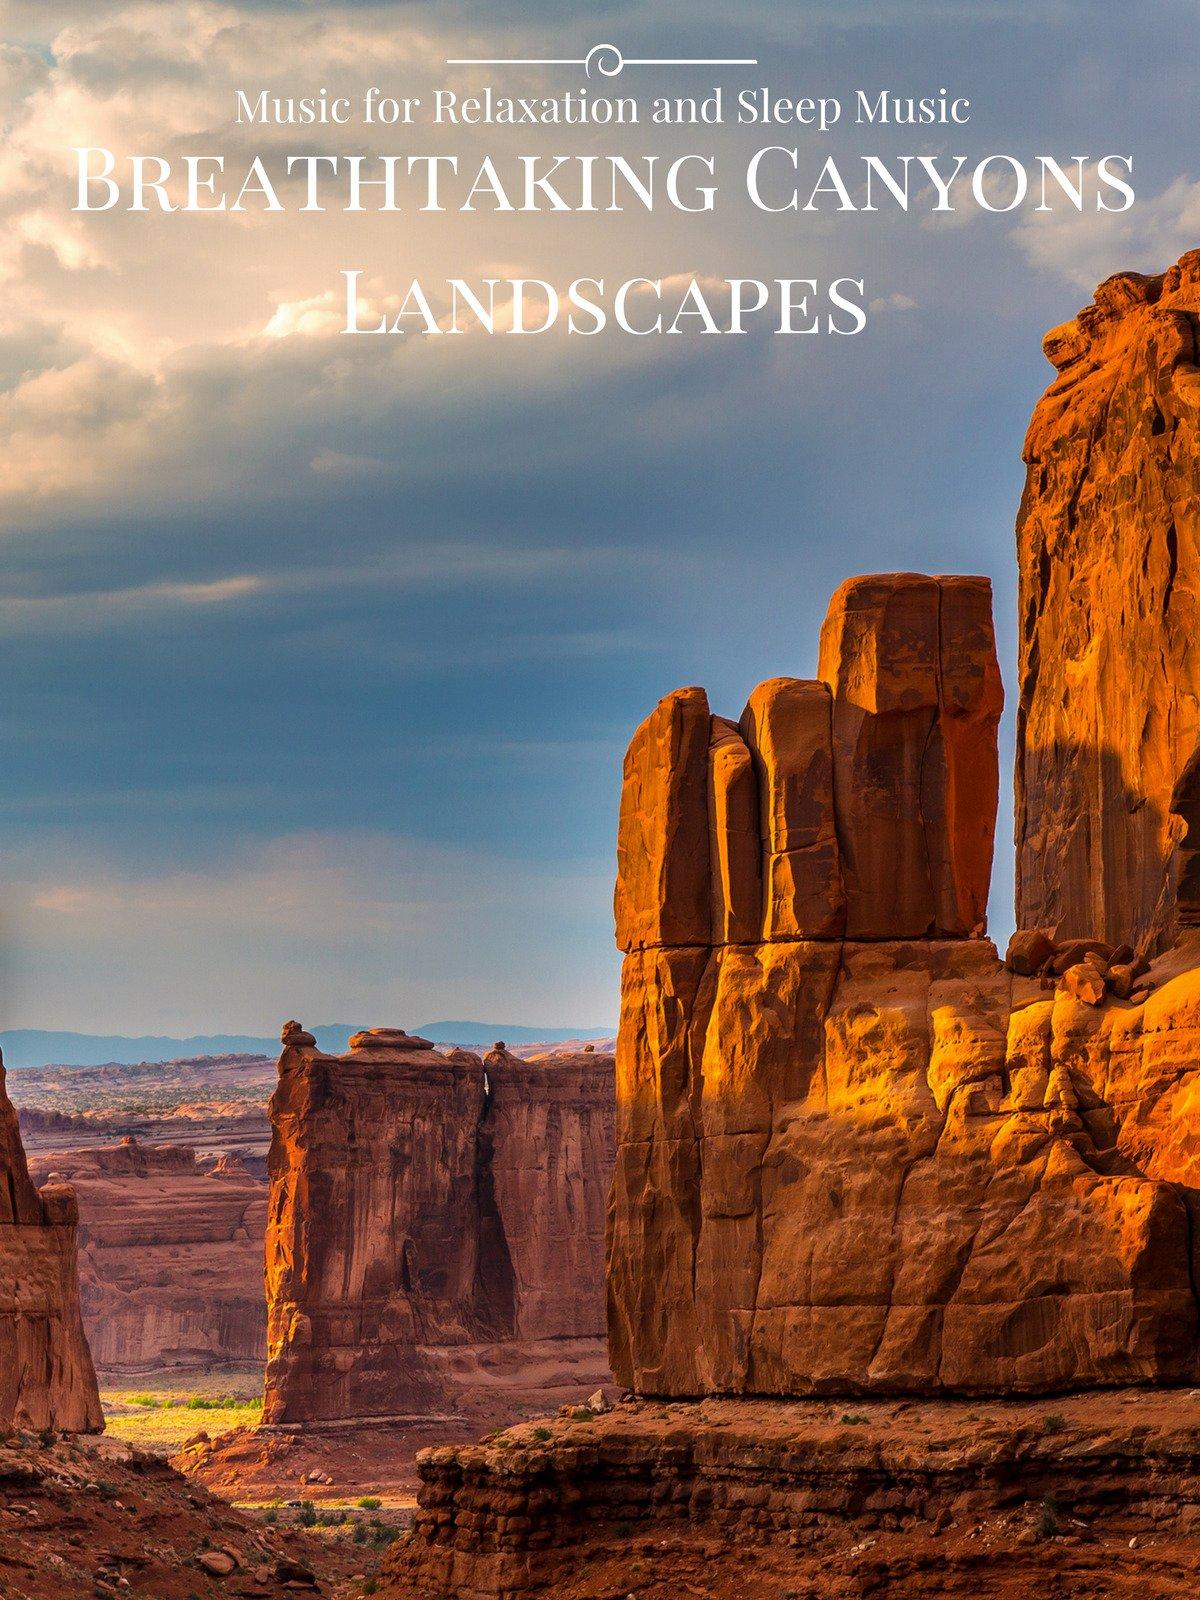 Breathtaking Canyons Landscapes Music for Relaxation and Sleep Music